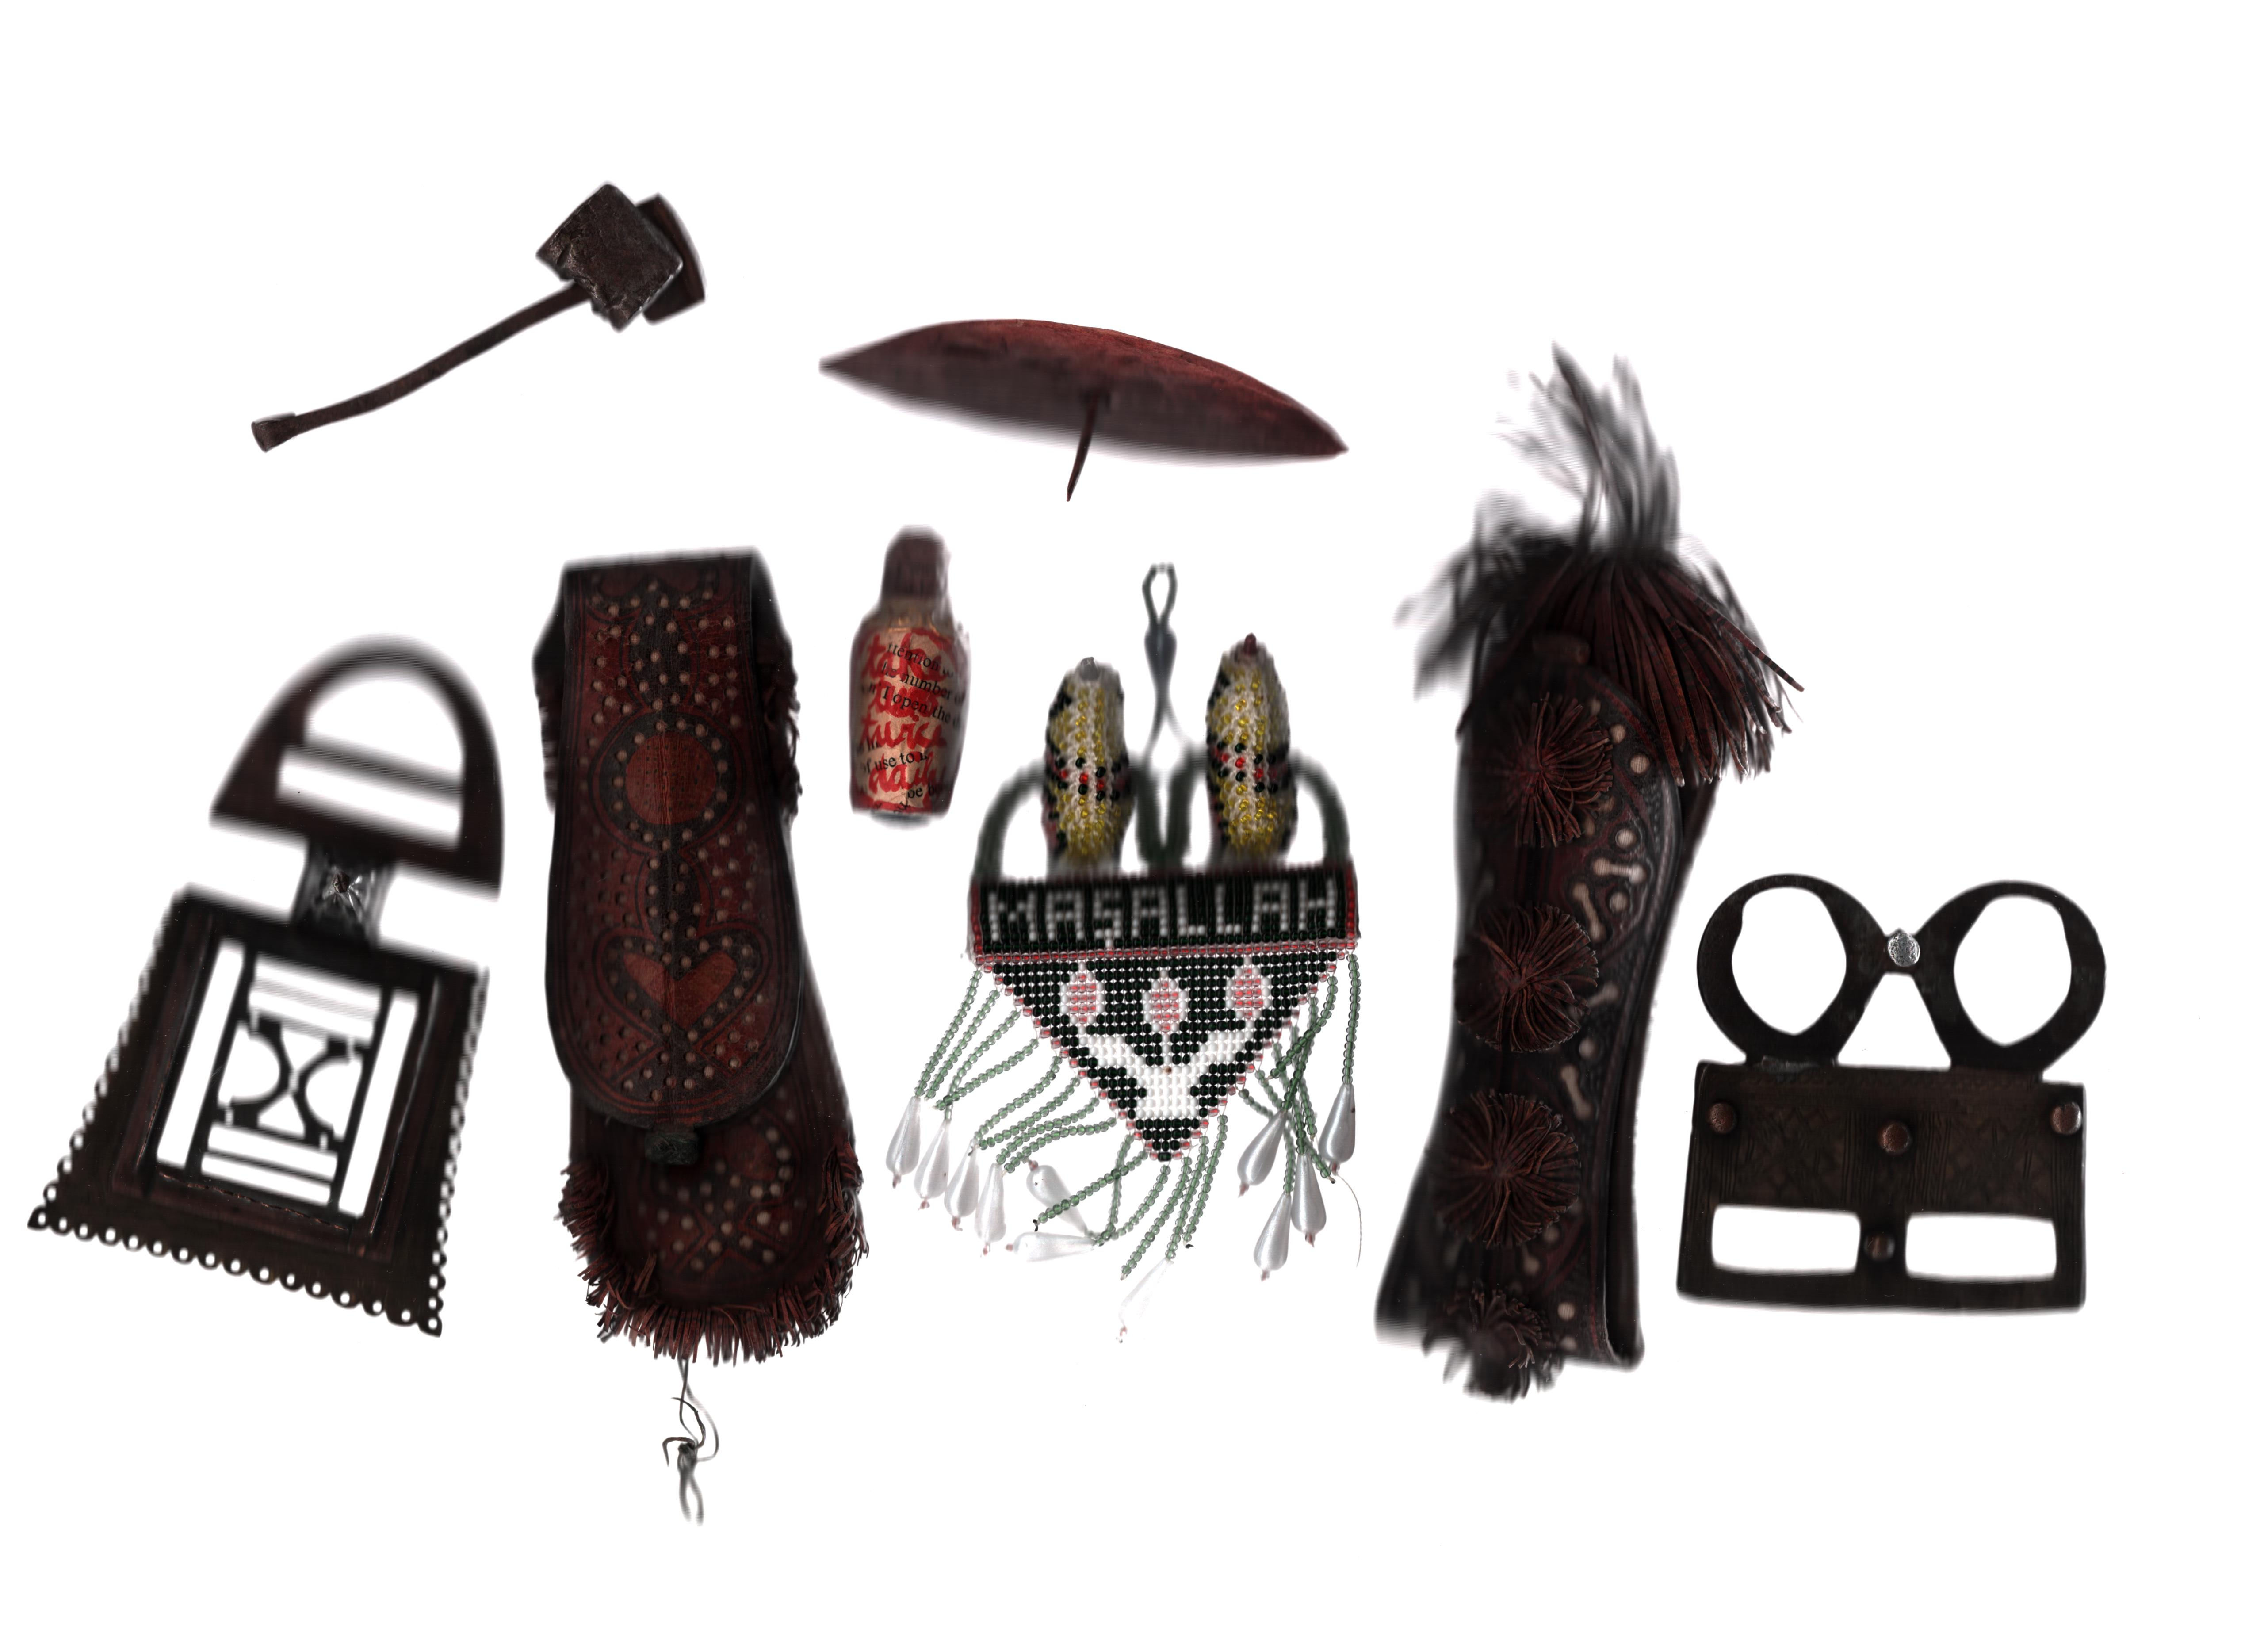 Tribal artefacts collection. 8 items assortment of metal, wood and leather. Good luck charms,